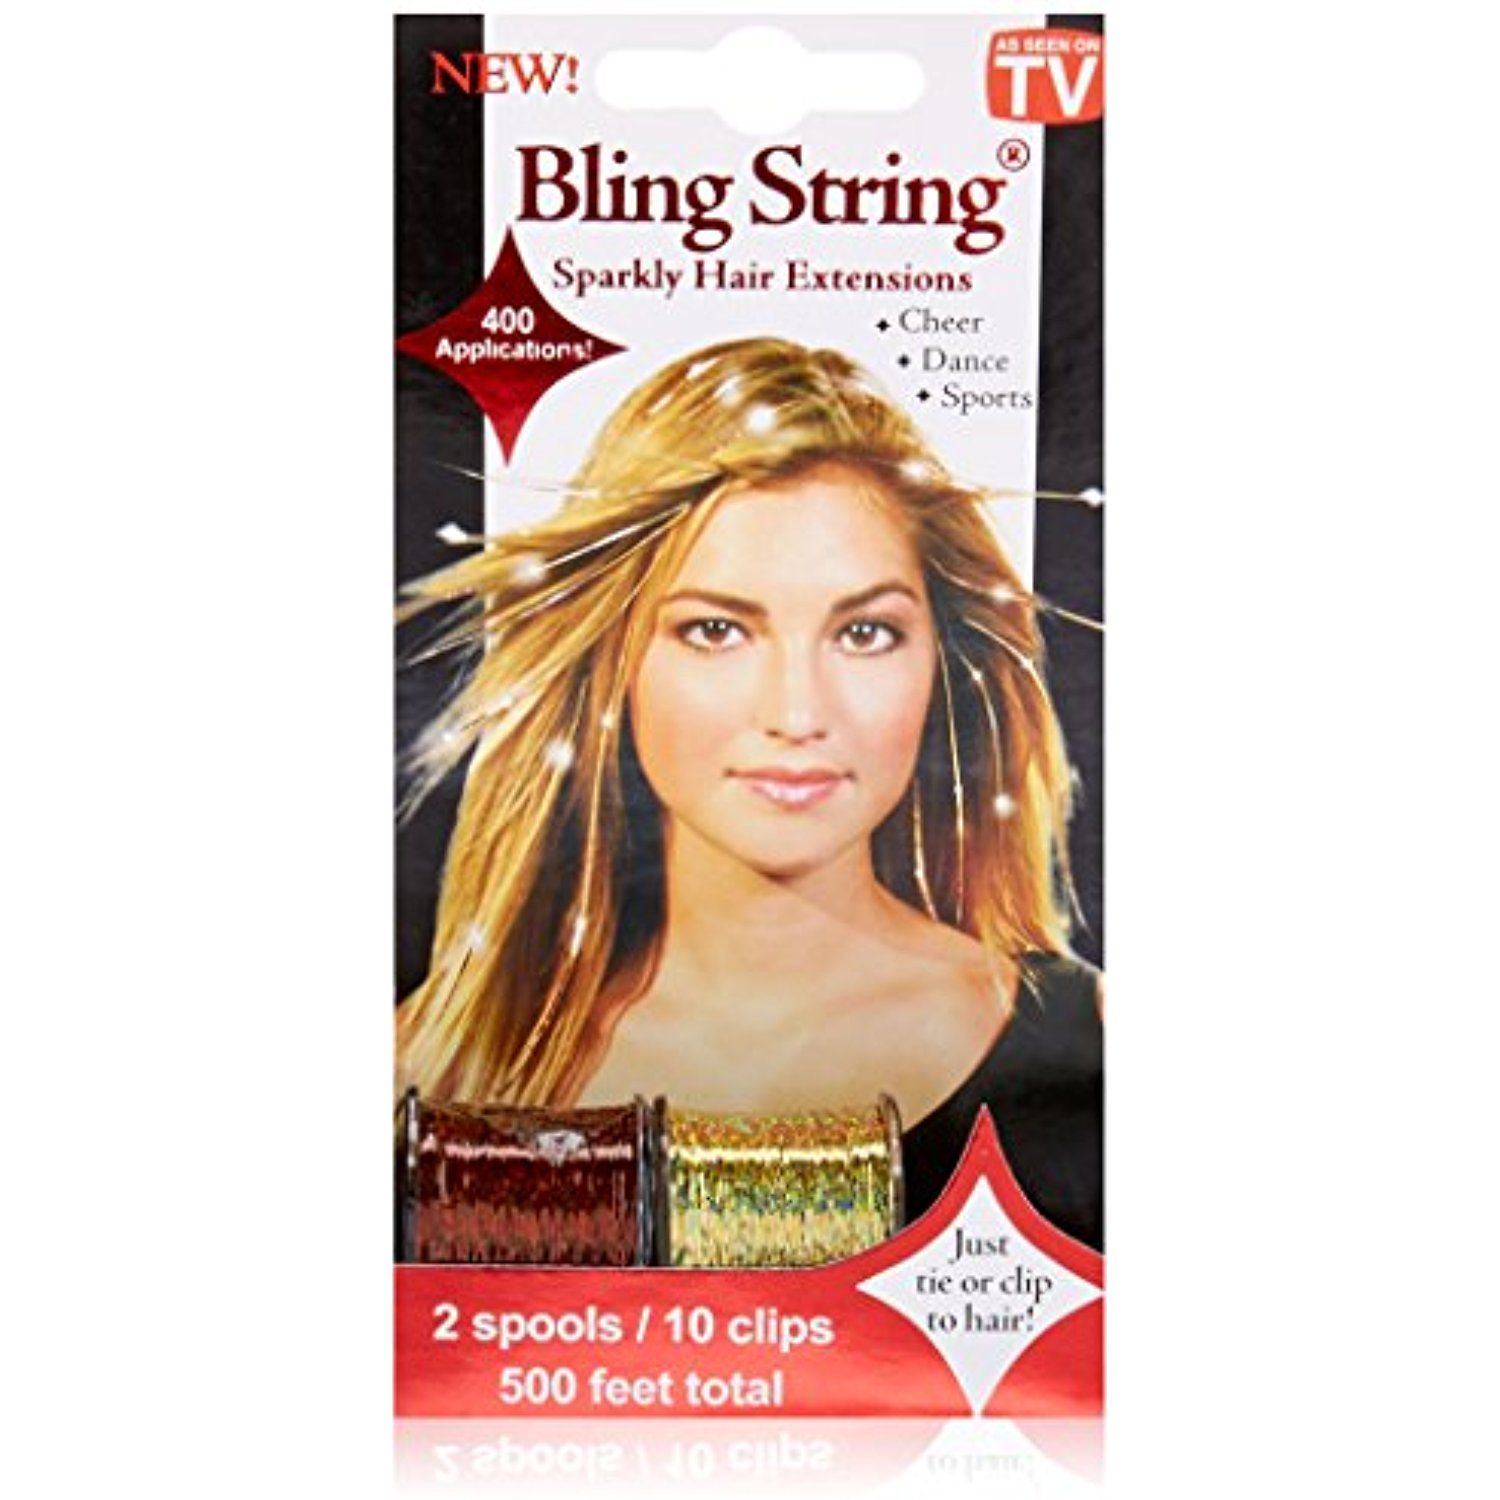 Mia Bling String Sparkly Hair Extensions Tinsel For The Hair On A